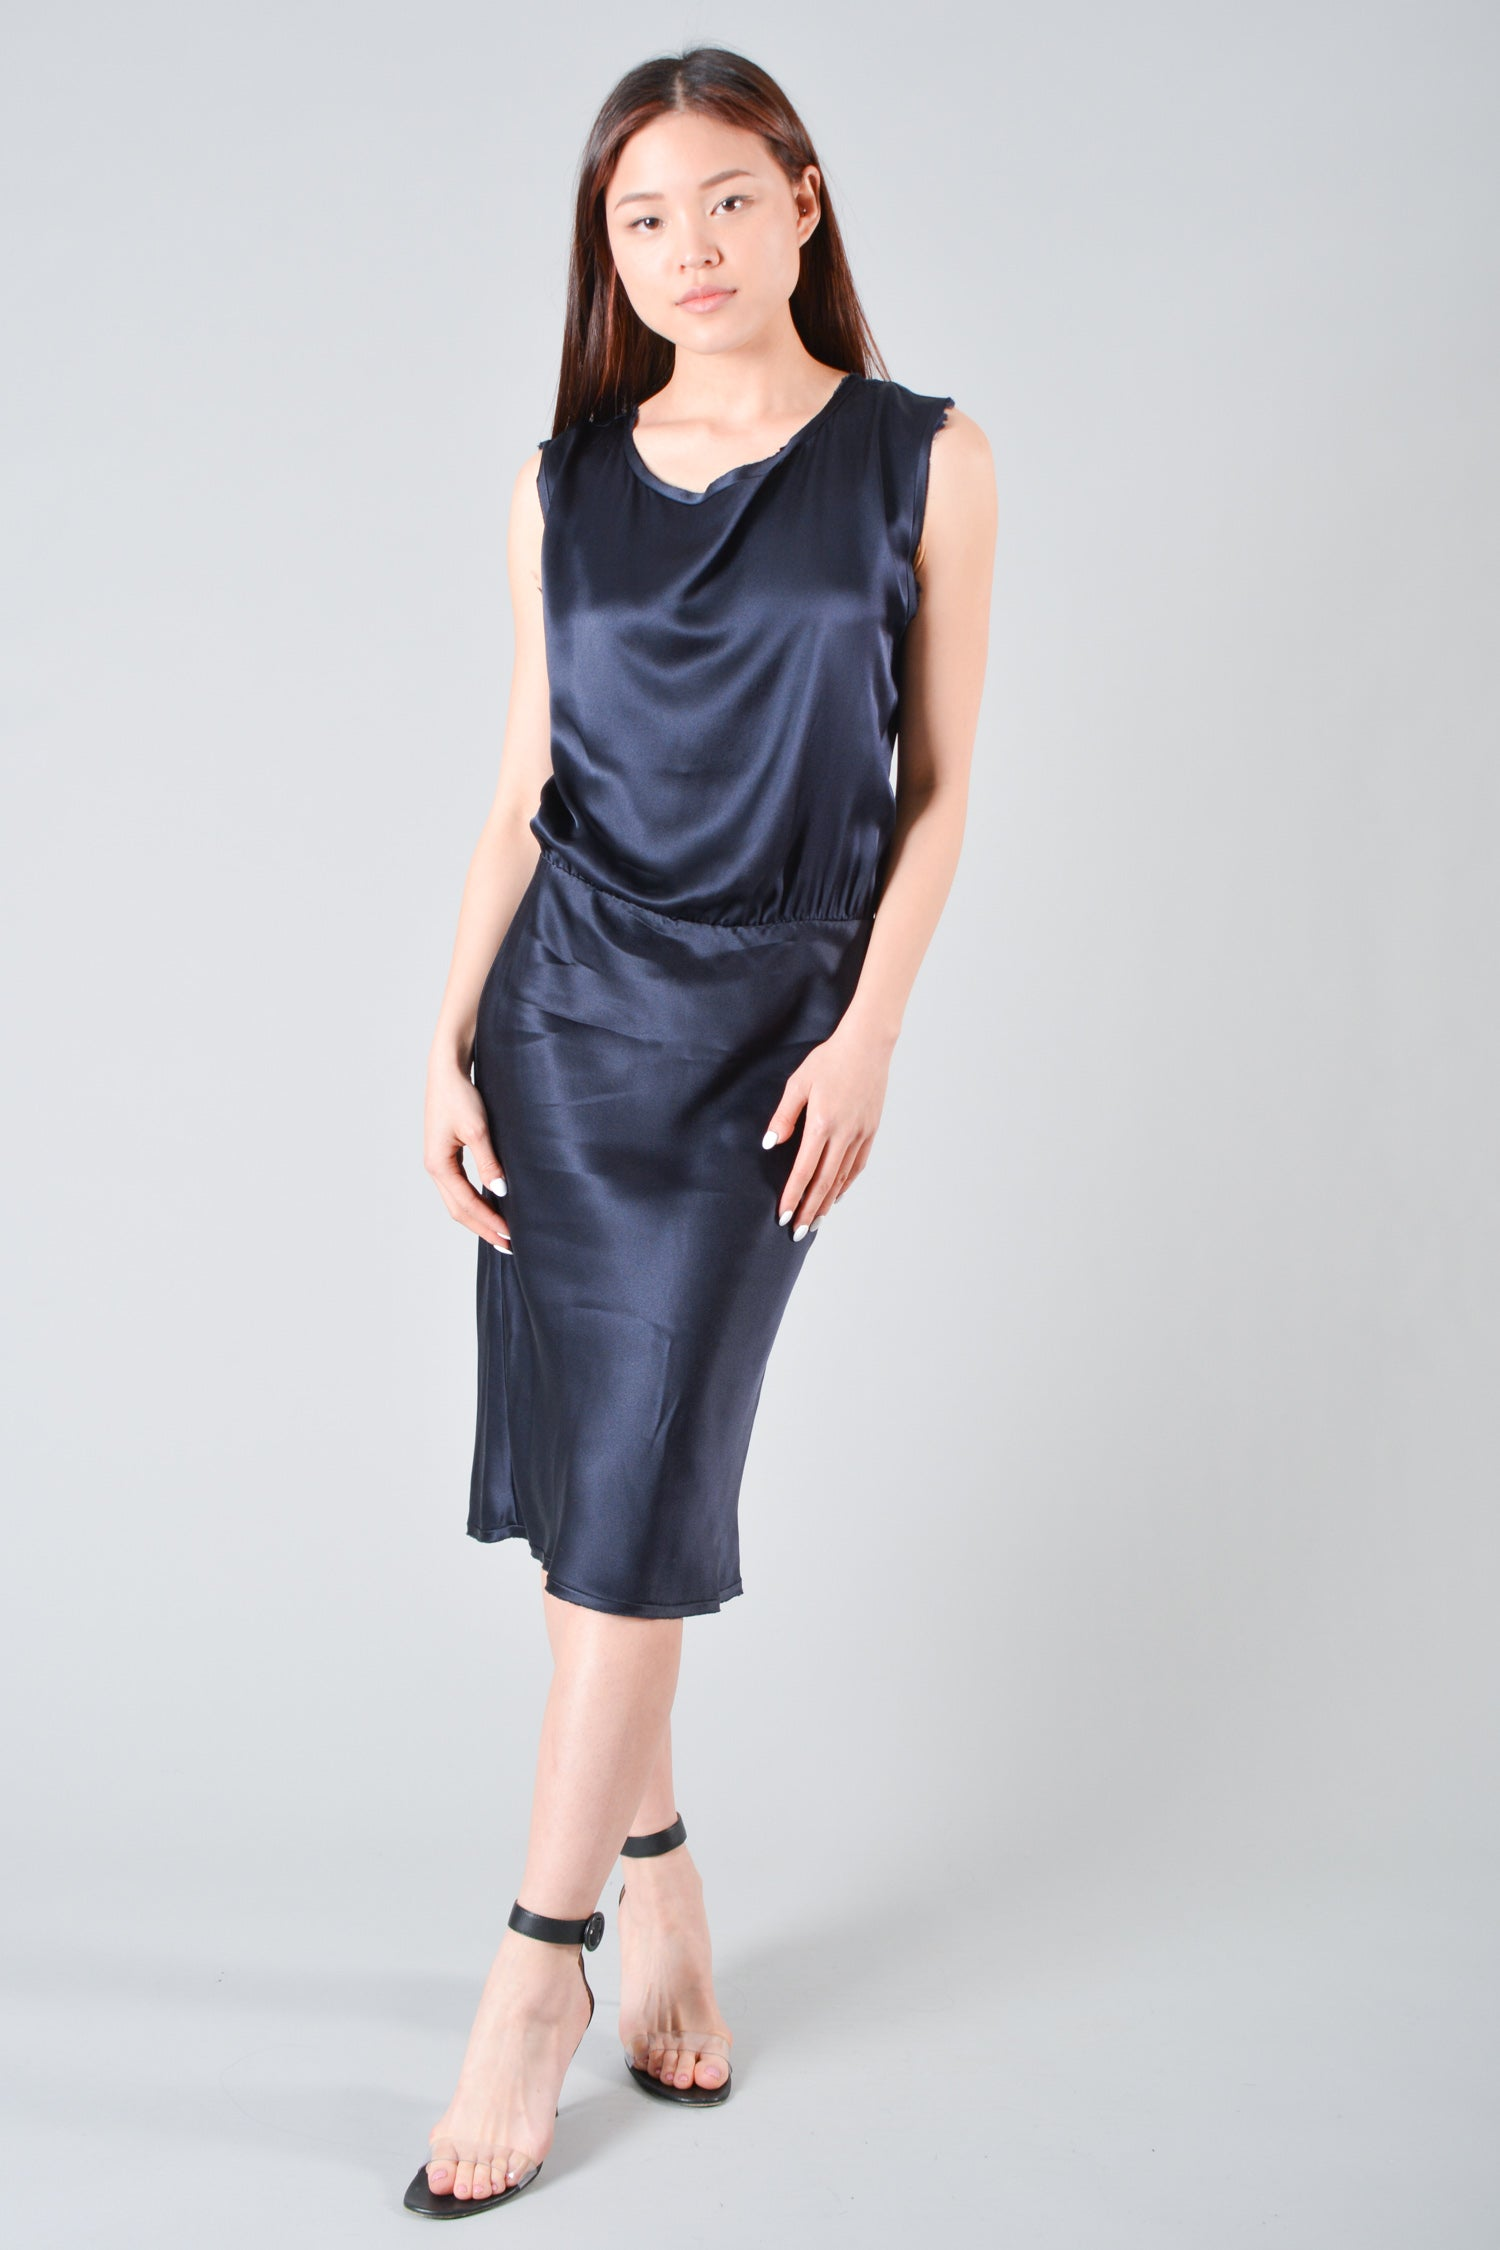 Nili Lotan Navy Sleeveless Silk Dress Size XS